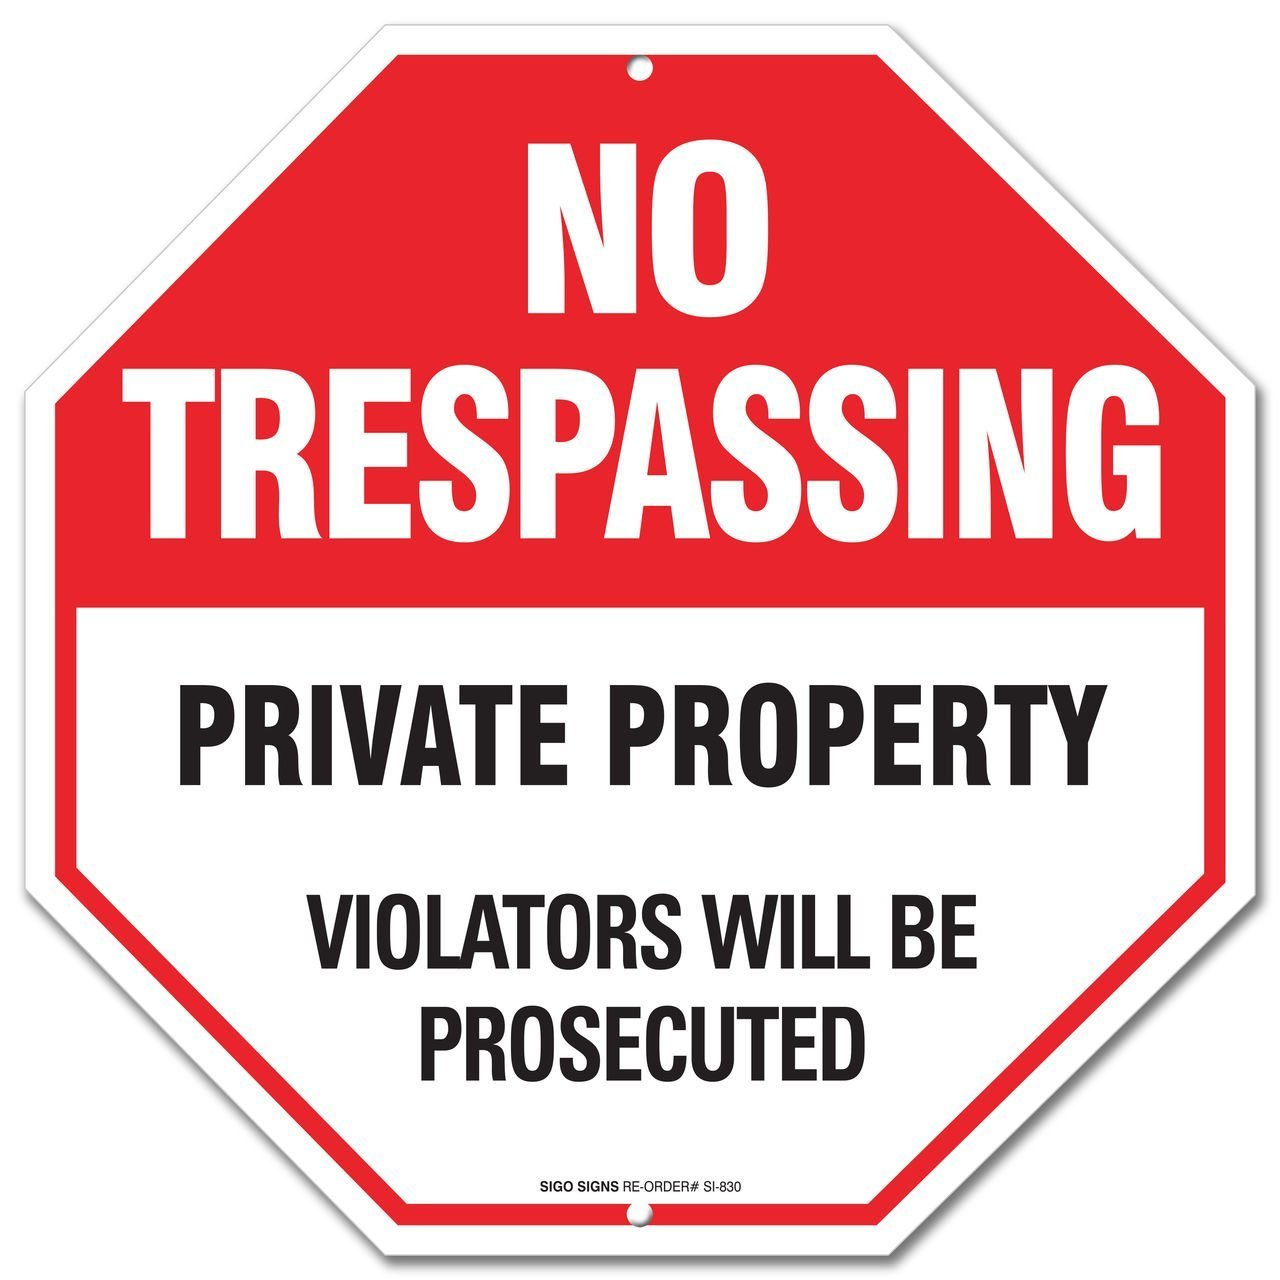 No Trespassing Sign - Private Property Sign - Violators Will Be Prosecuted Legend - Large 12 X 12 Octagon Rust Free 0.40 Aluminum Sign